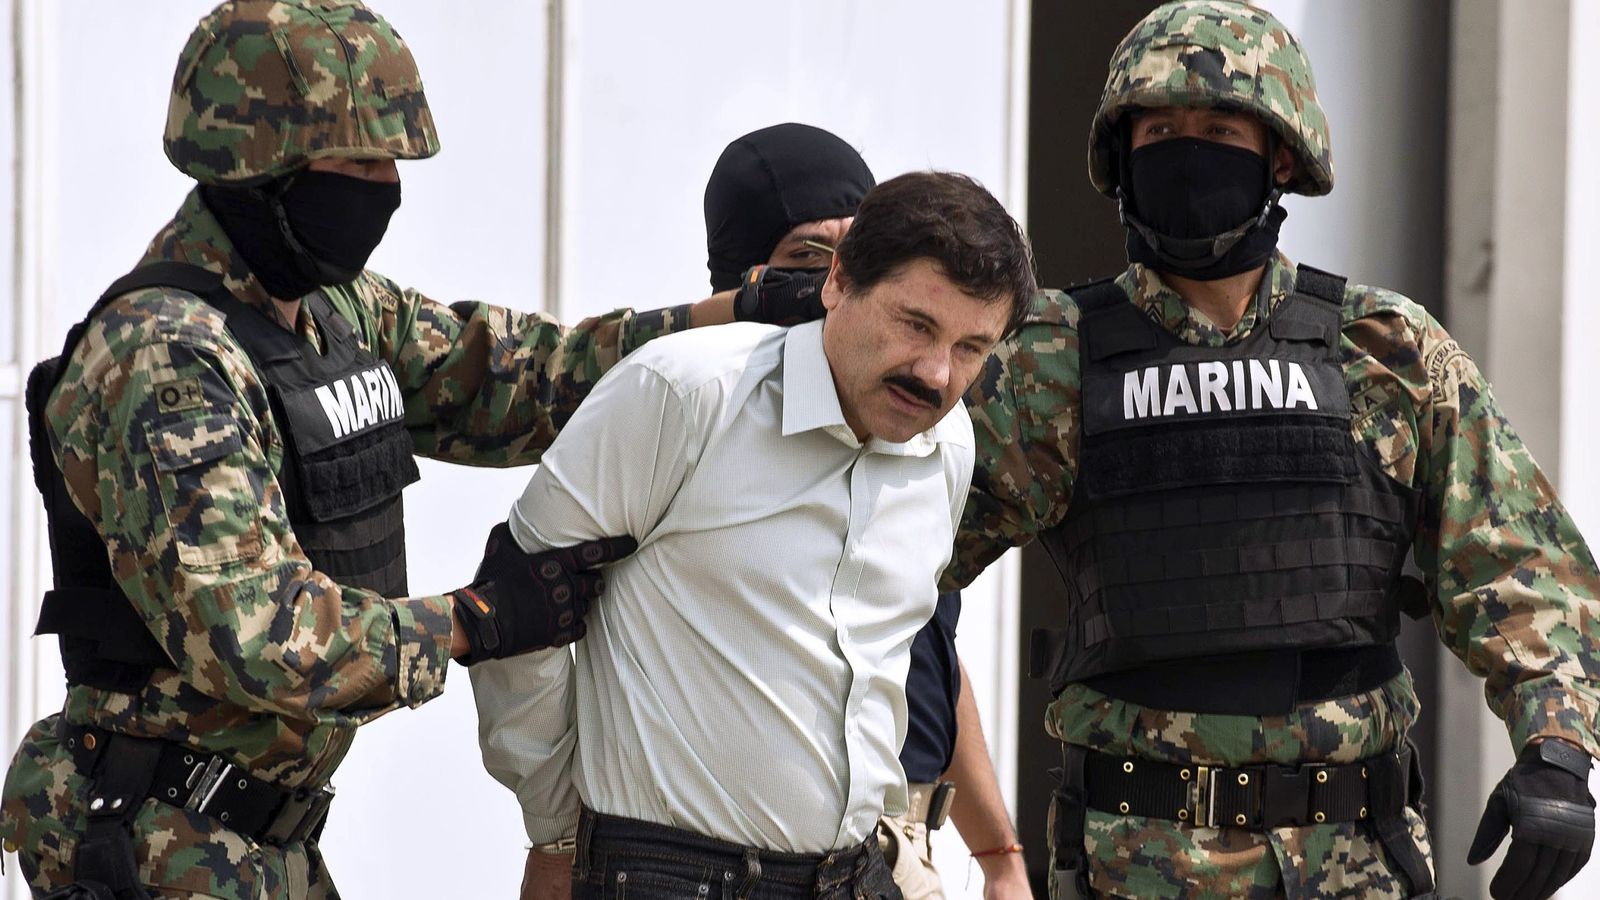 El Chapo escaped naked through tunnel under bath, mistress claims